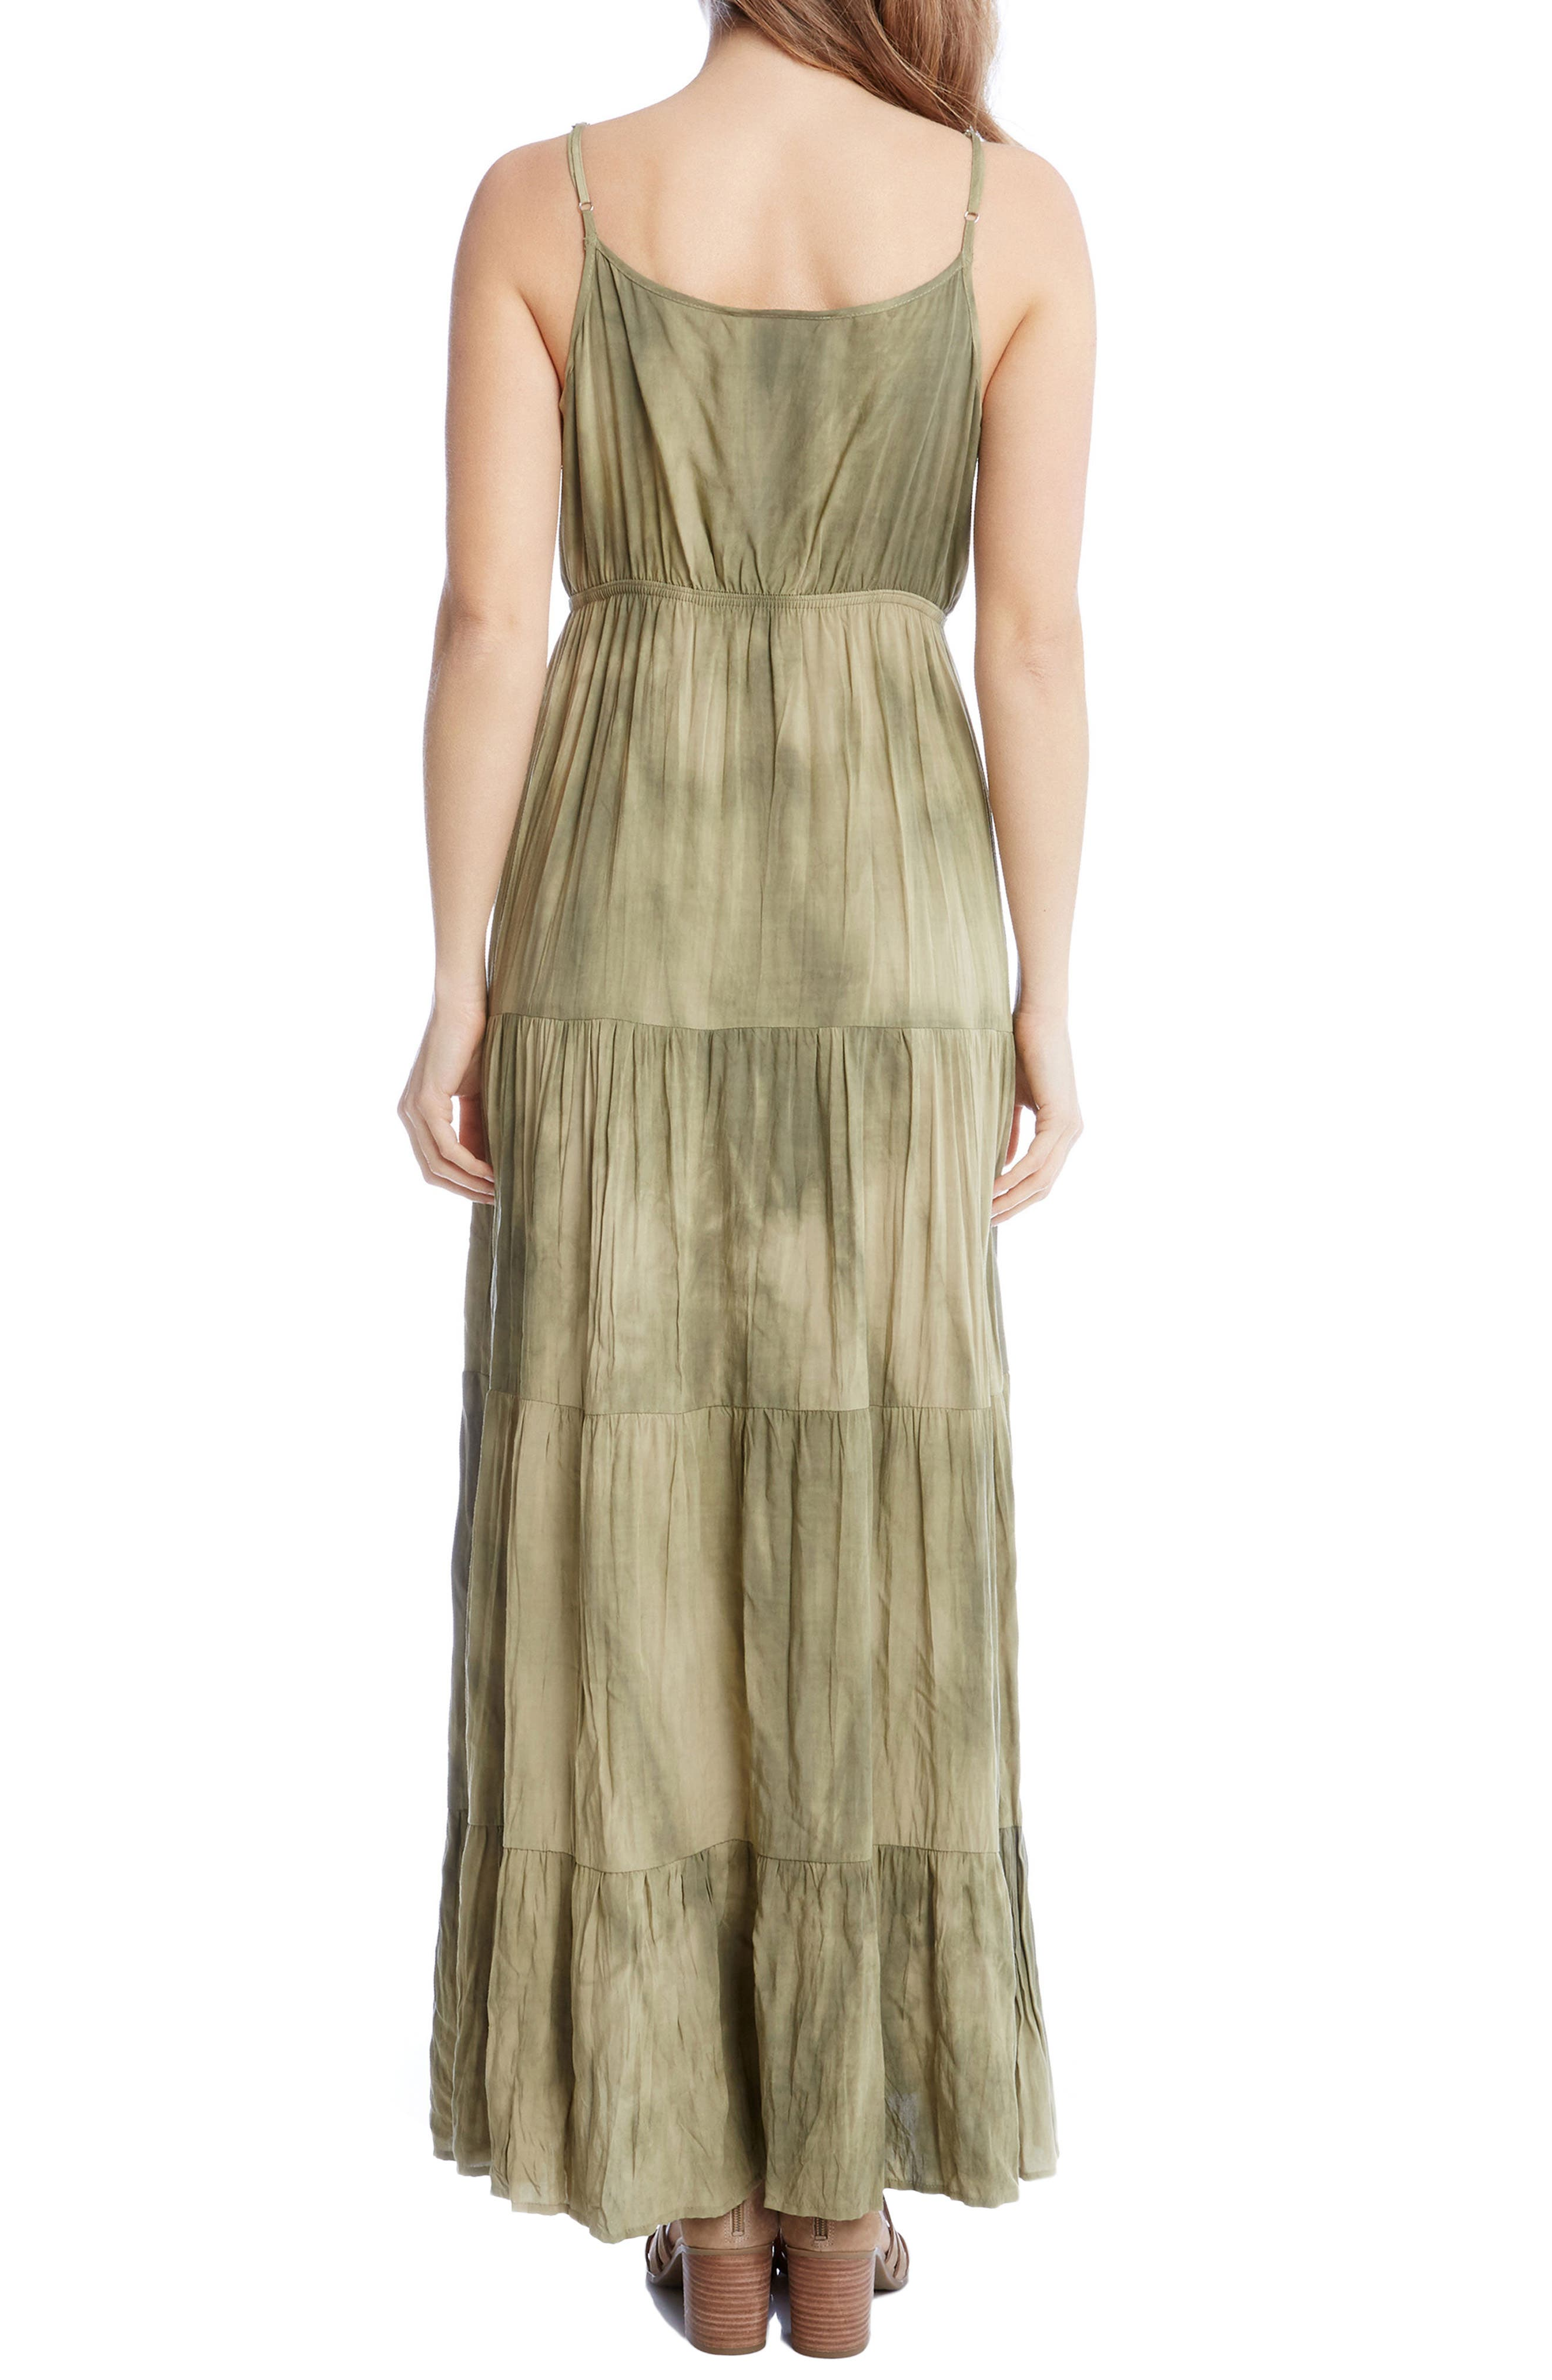 Tiered Maxi Dress,                             Alternate thumbnail 2, color,                             337